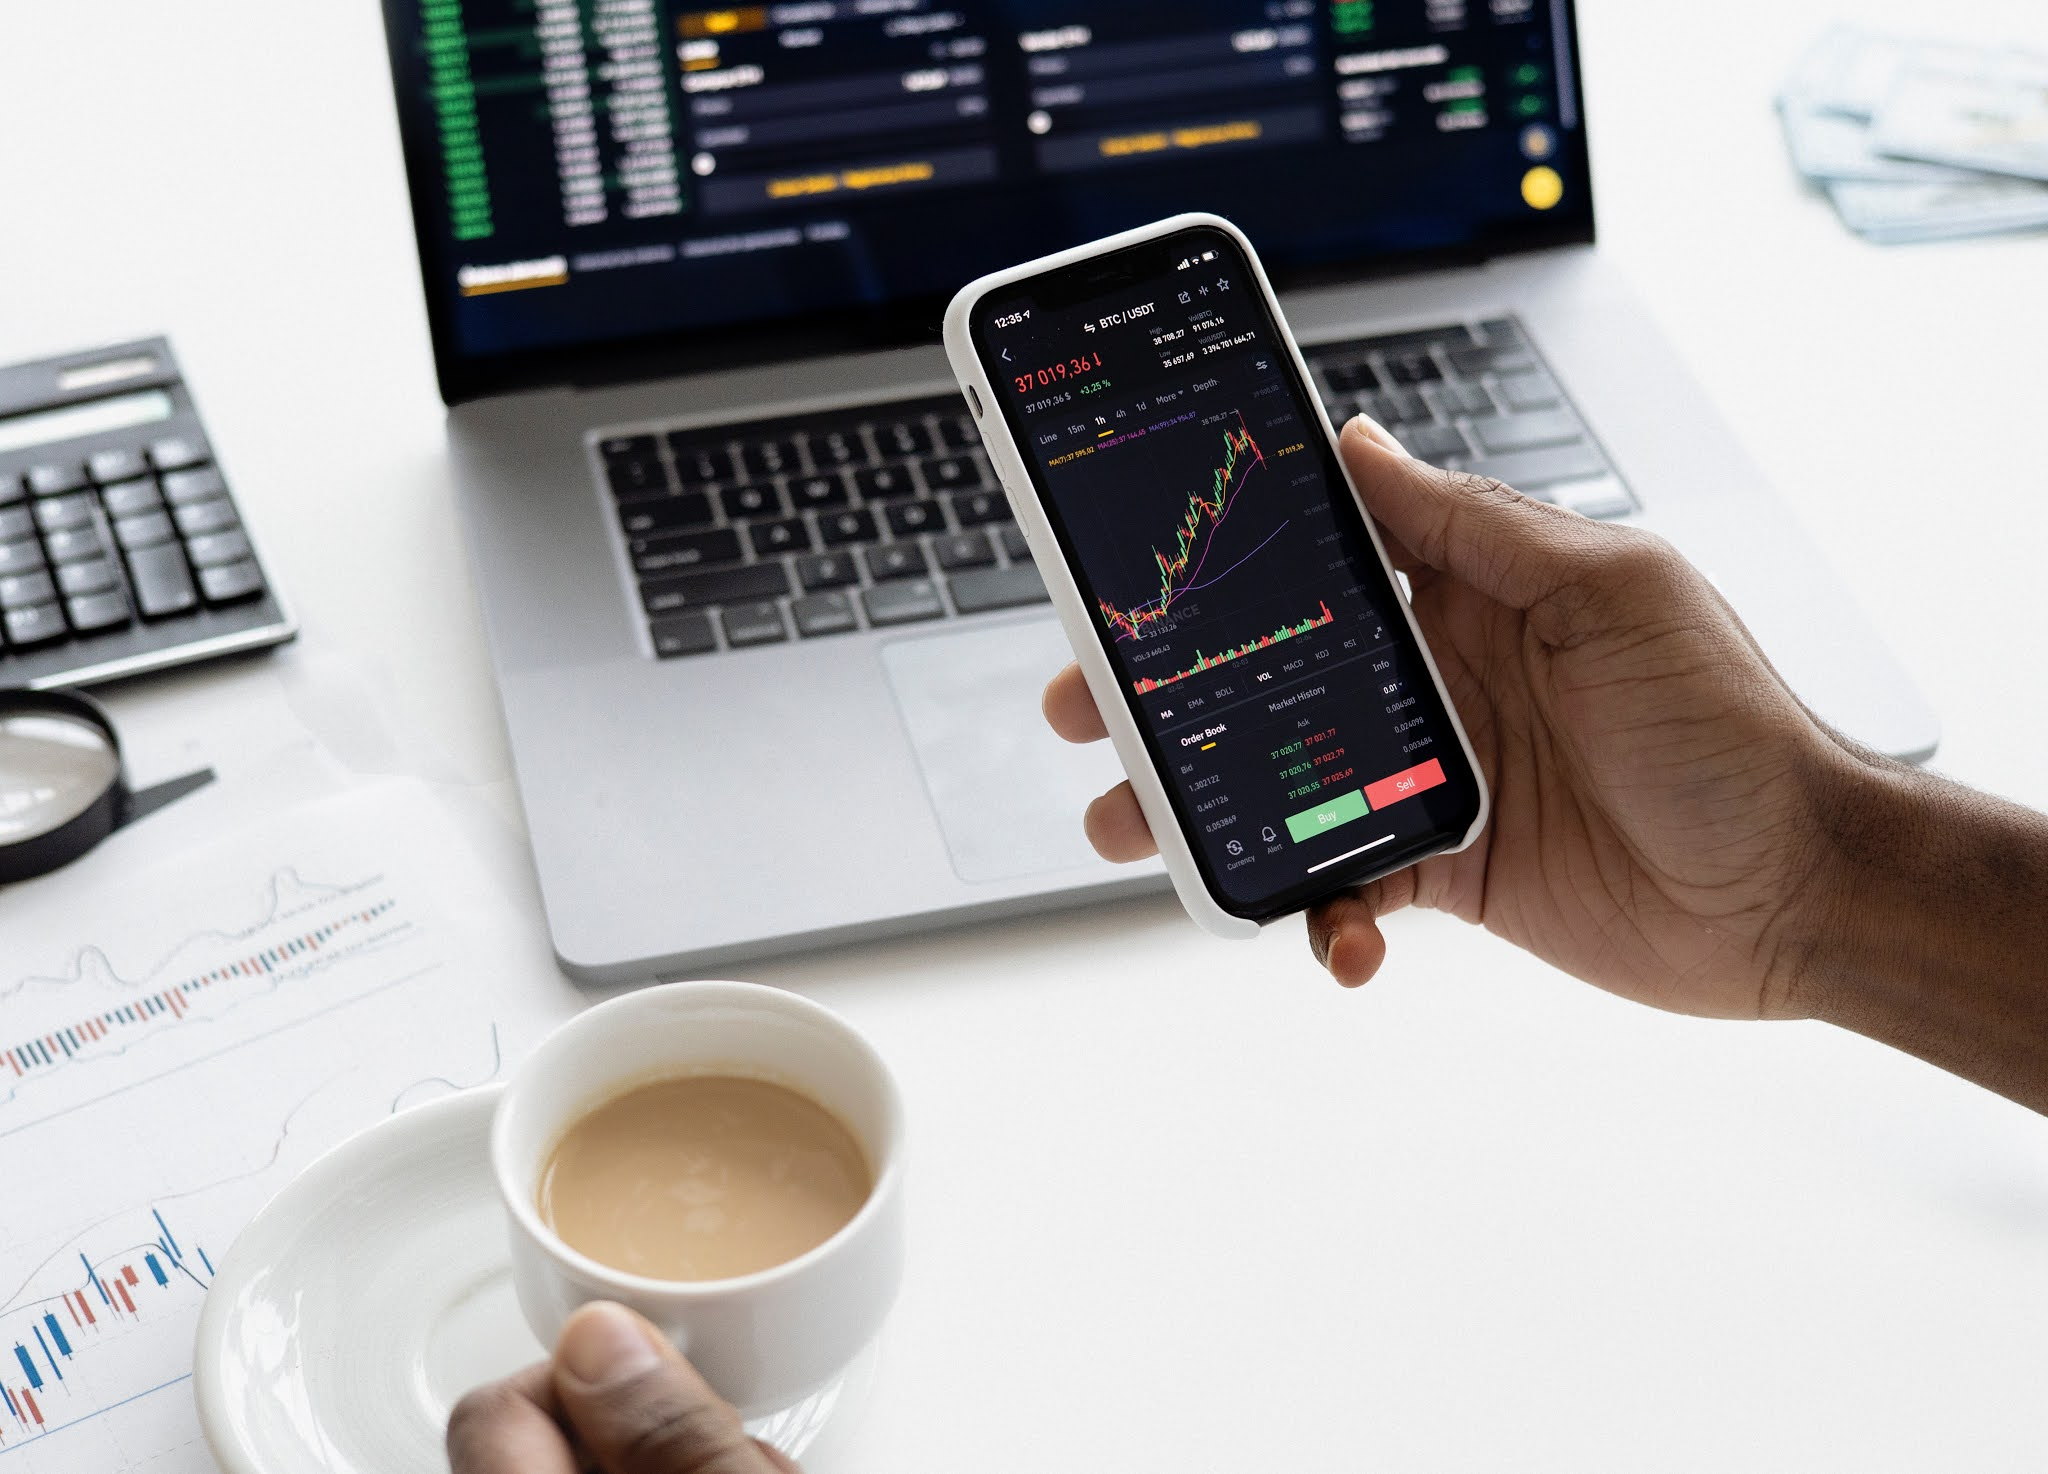 WHY TO INVEST IN THE SHARE MARKET?